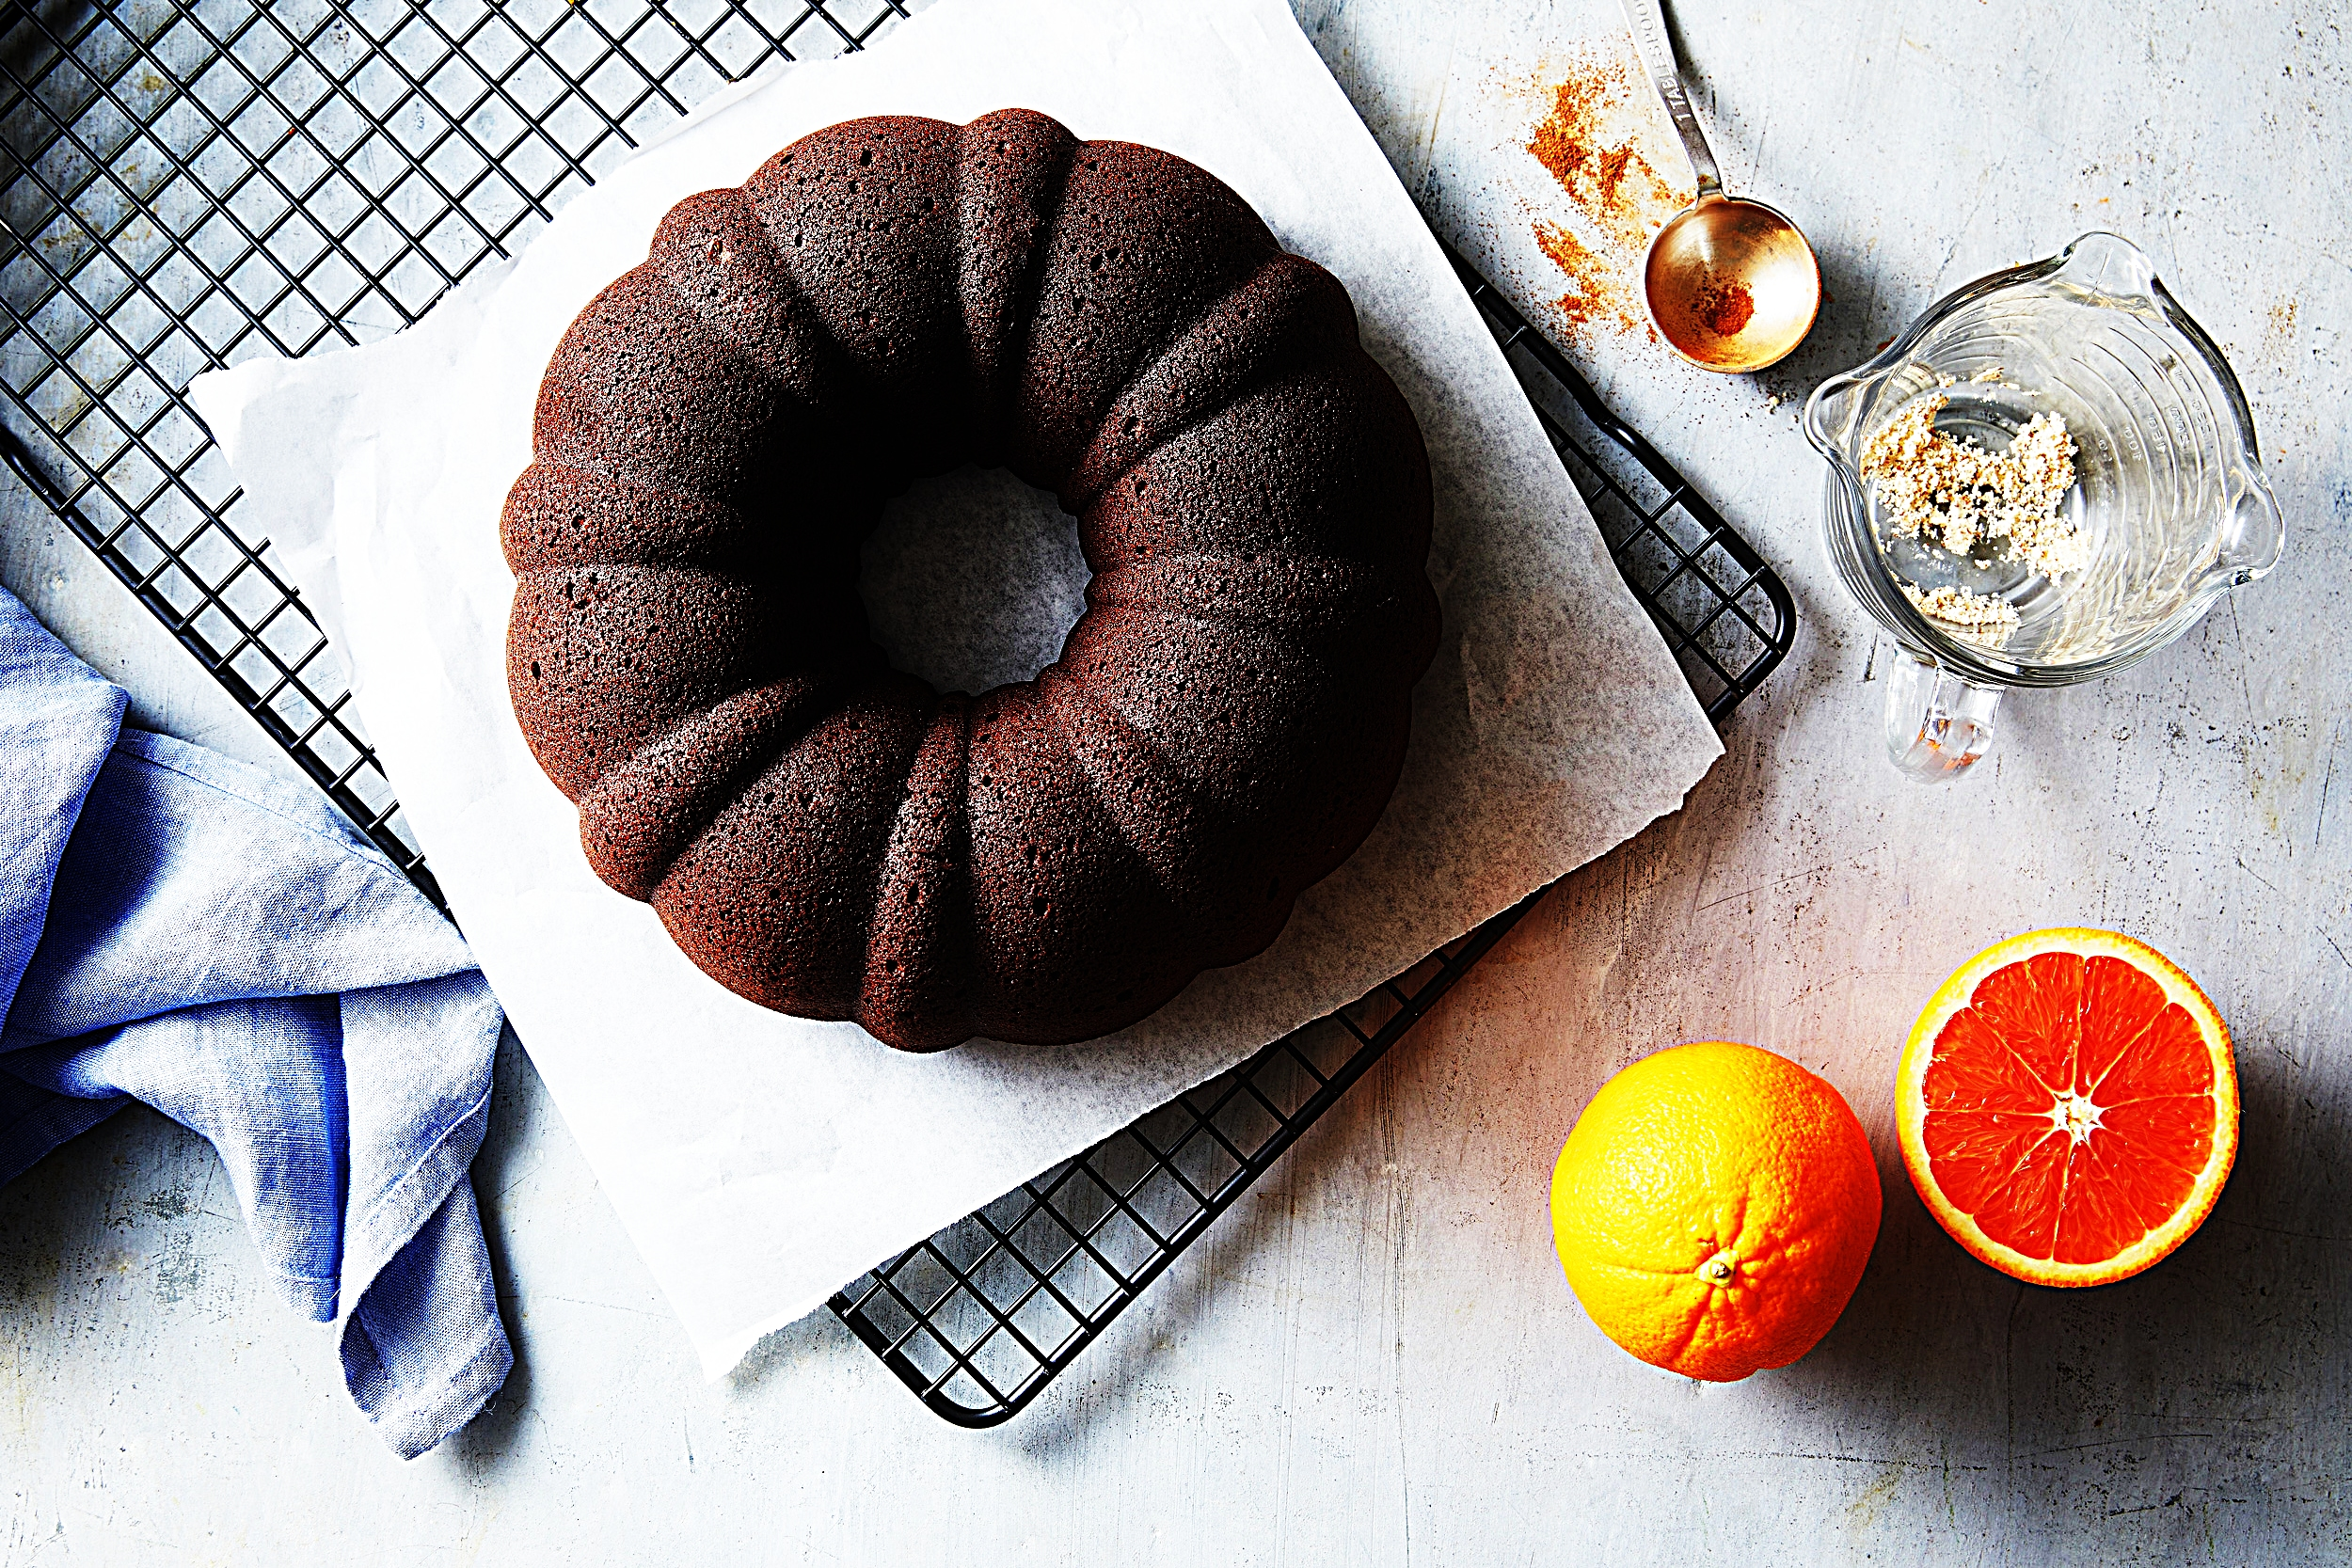 Stupid-Easy Recipe for Paleo Citrus and Spice Coffee Cake (#1 Top-Rated)